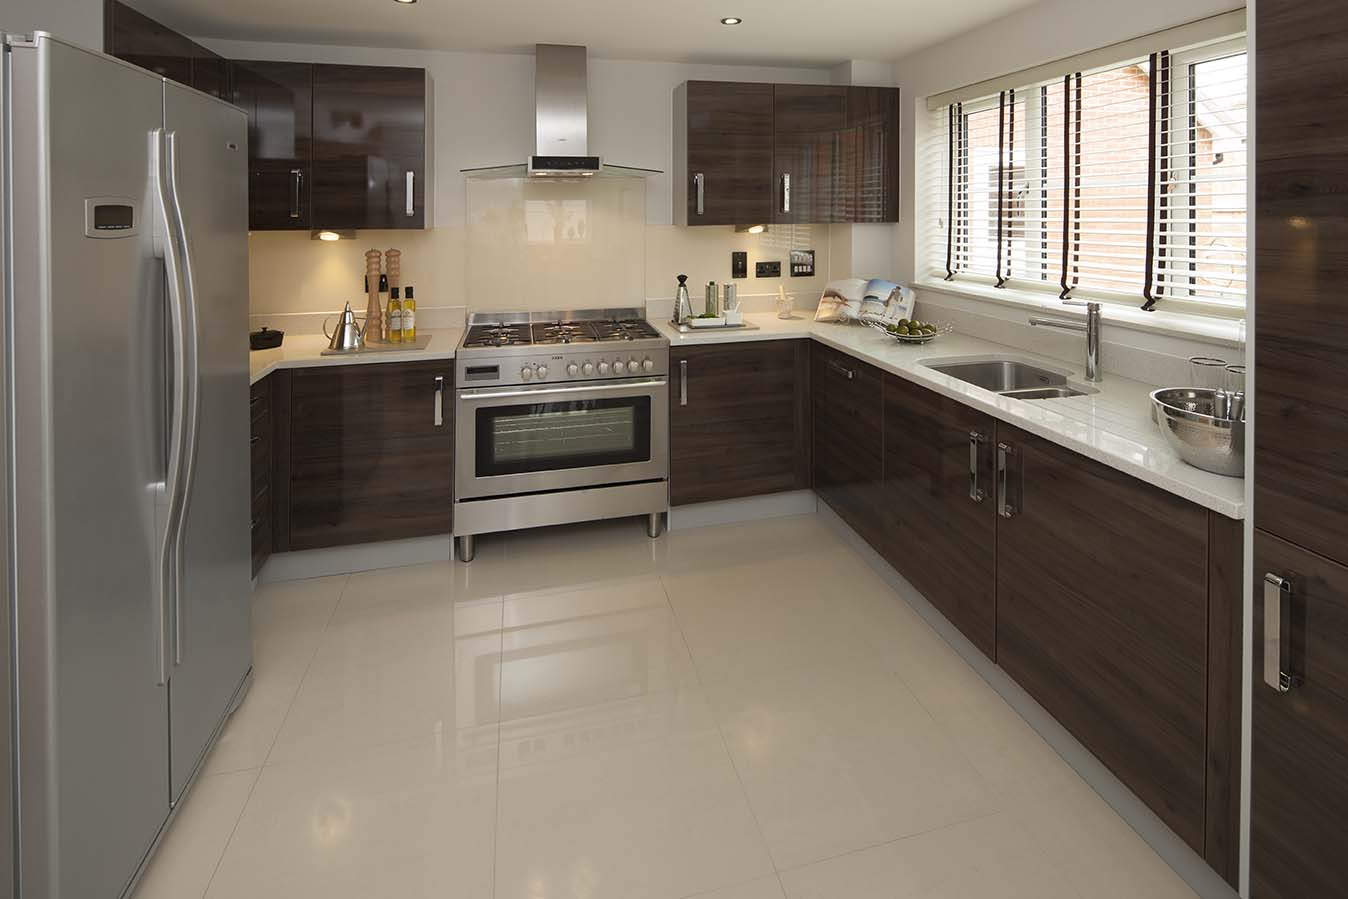 11 Plot 1 Kitchen